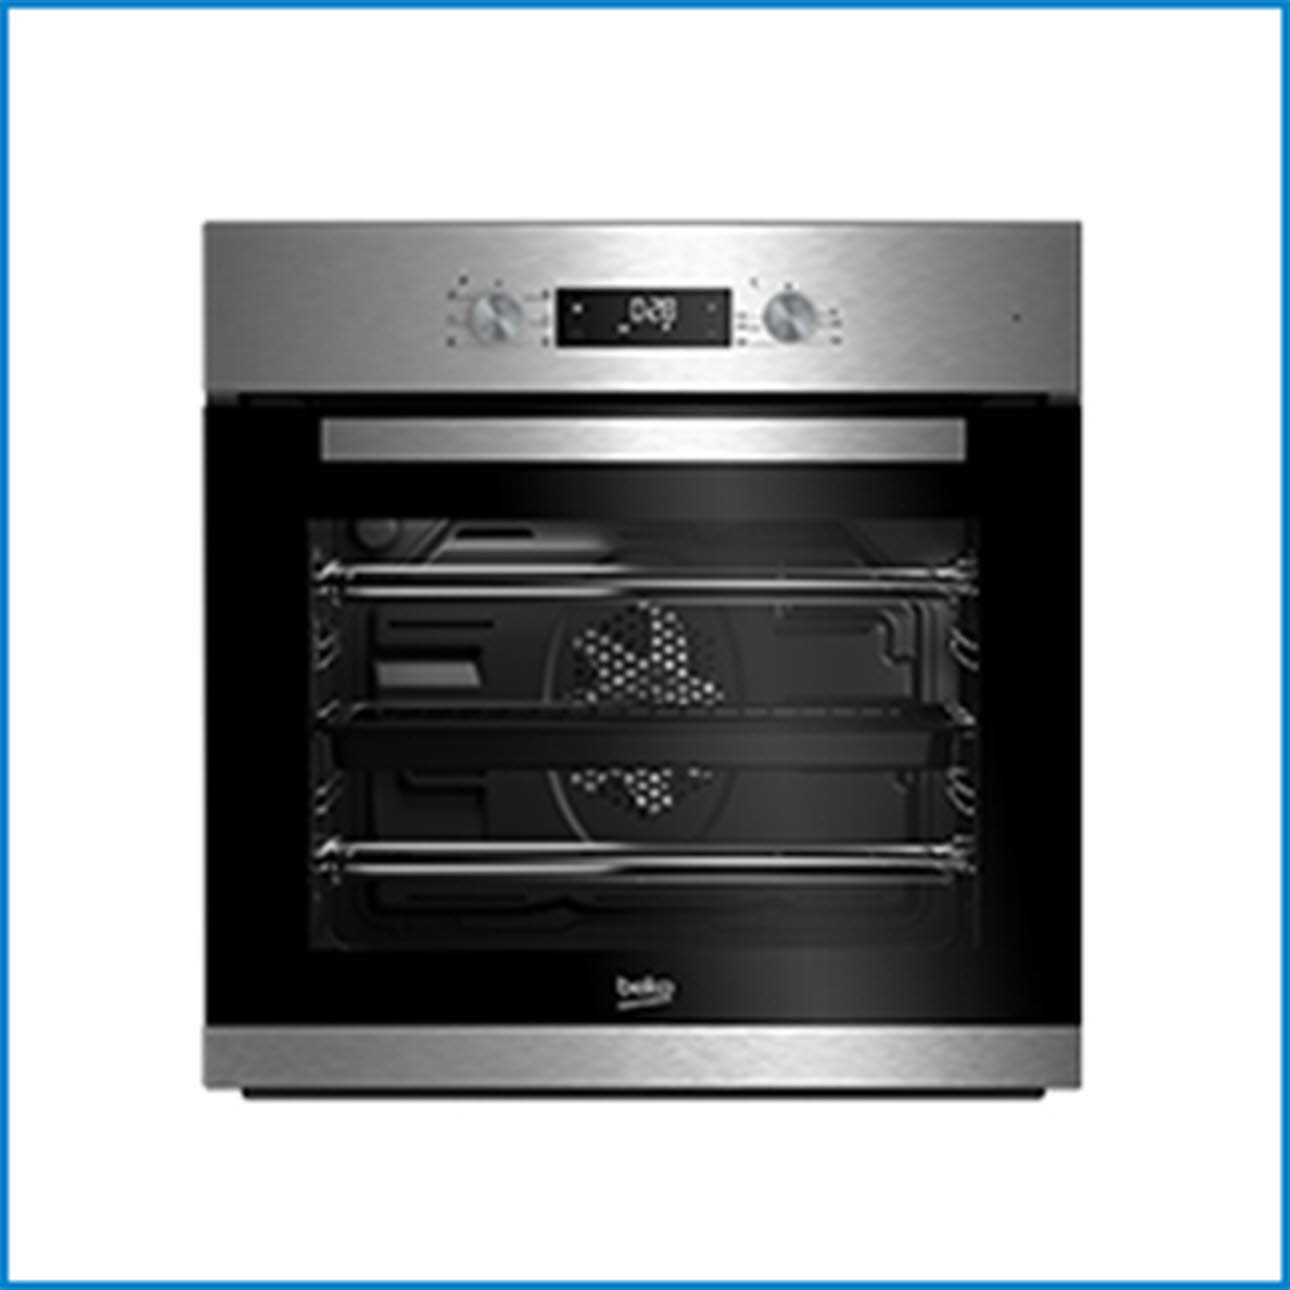 Beko Kitchen Appliances Beko Kitchen Appliances Magnet Trade